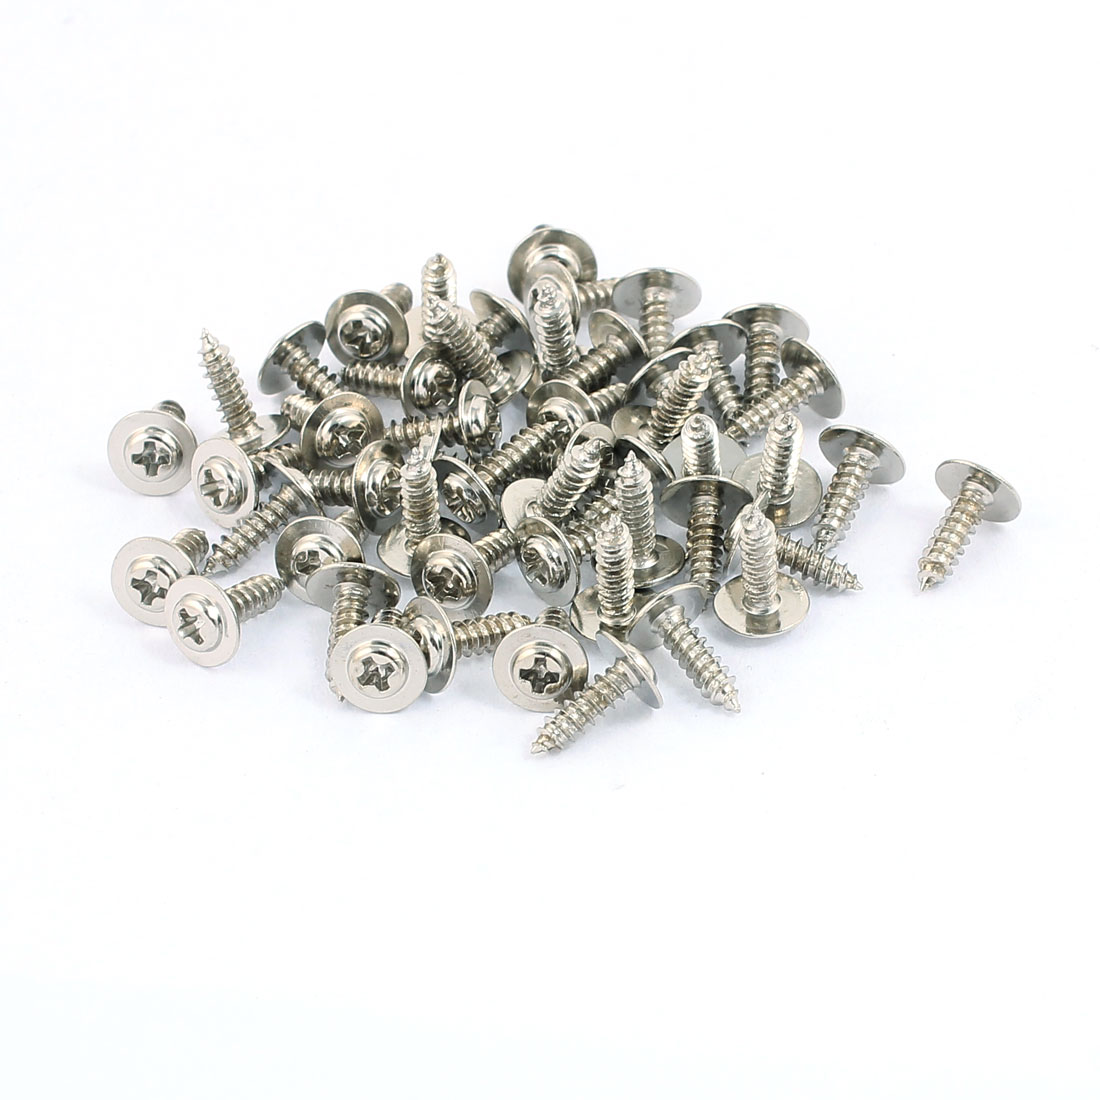 50pcs 8x2.3mm Stainless Steel Self Tapping Screw Round Phillips Head With Washer